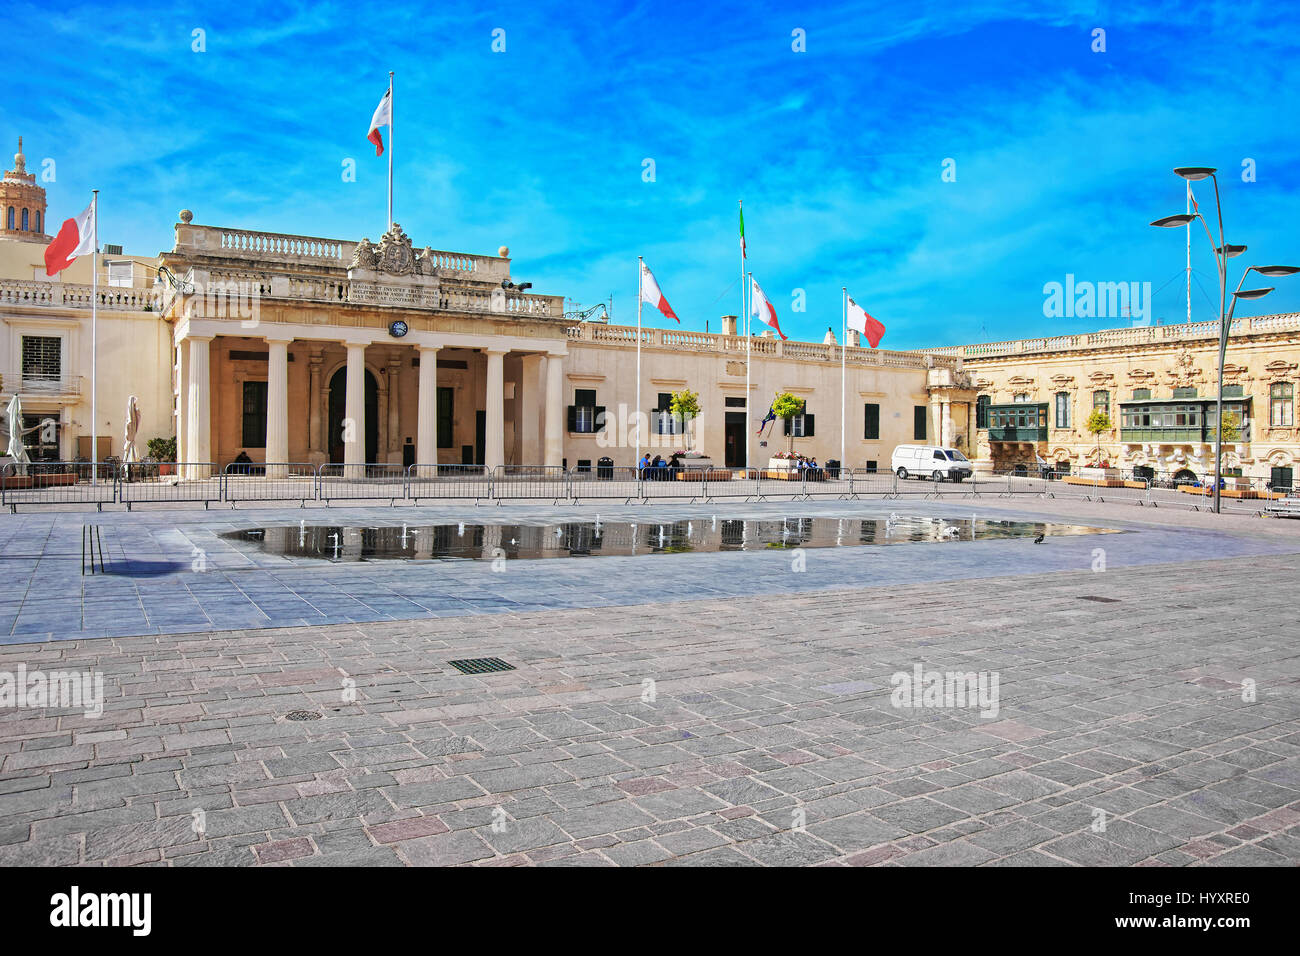 Valletta, Malta - April 3, 2014: People at Guard house in St George Square in Valletta old town, Malta - Stock Image